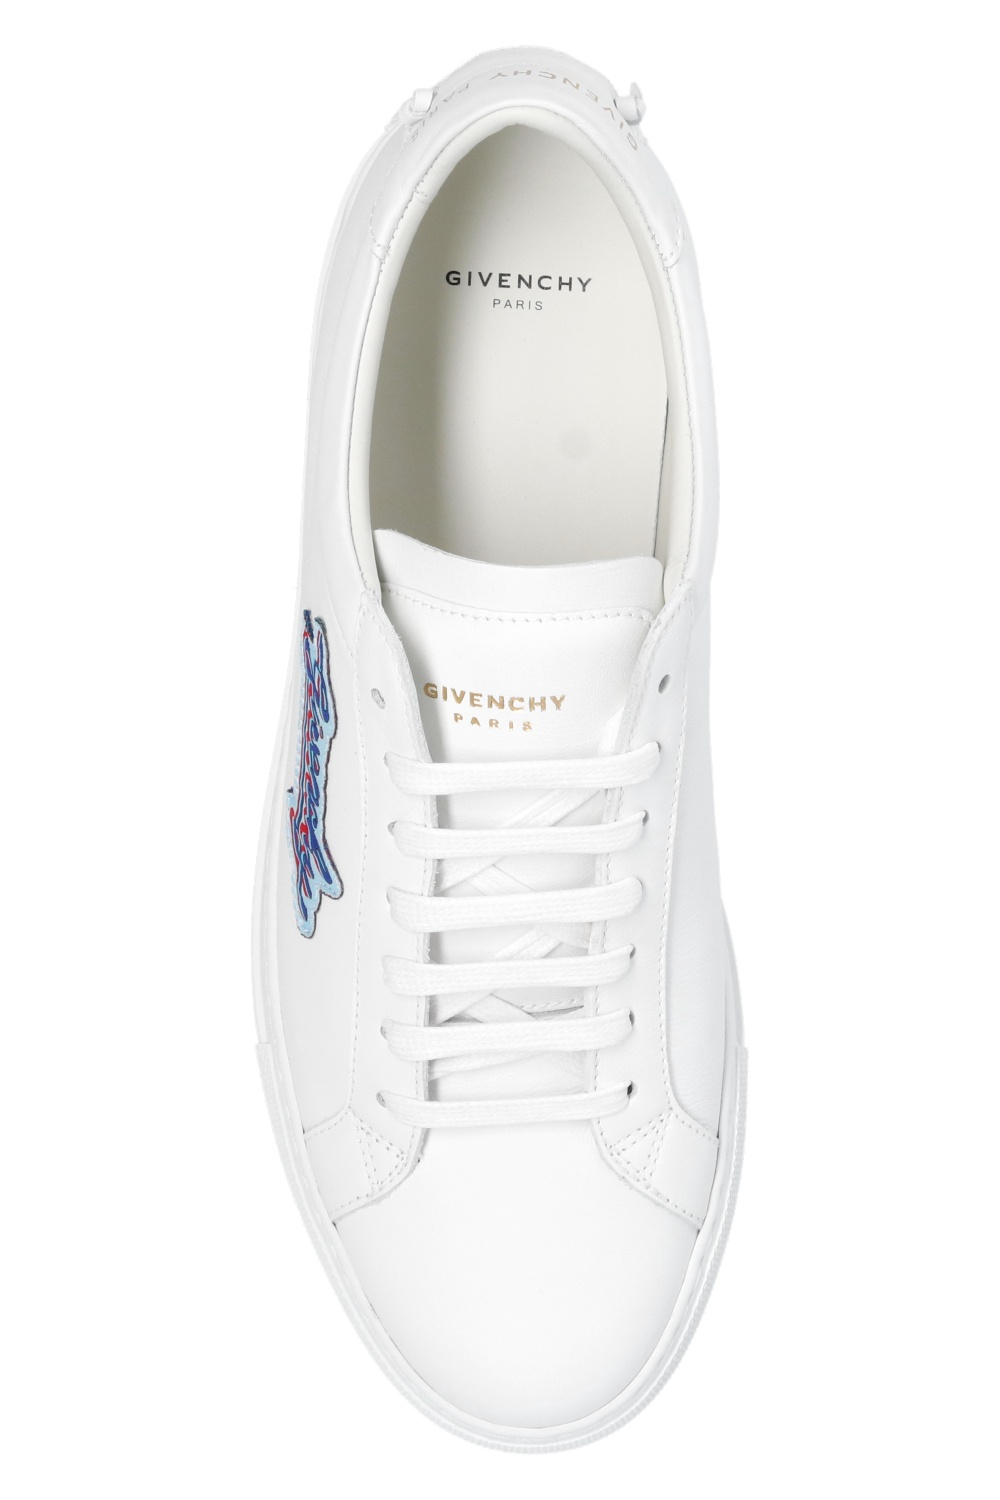 Givenchy Sneakers with logo